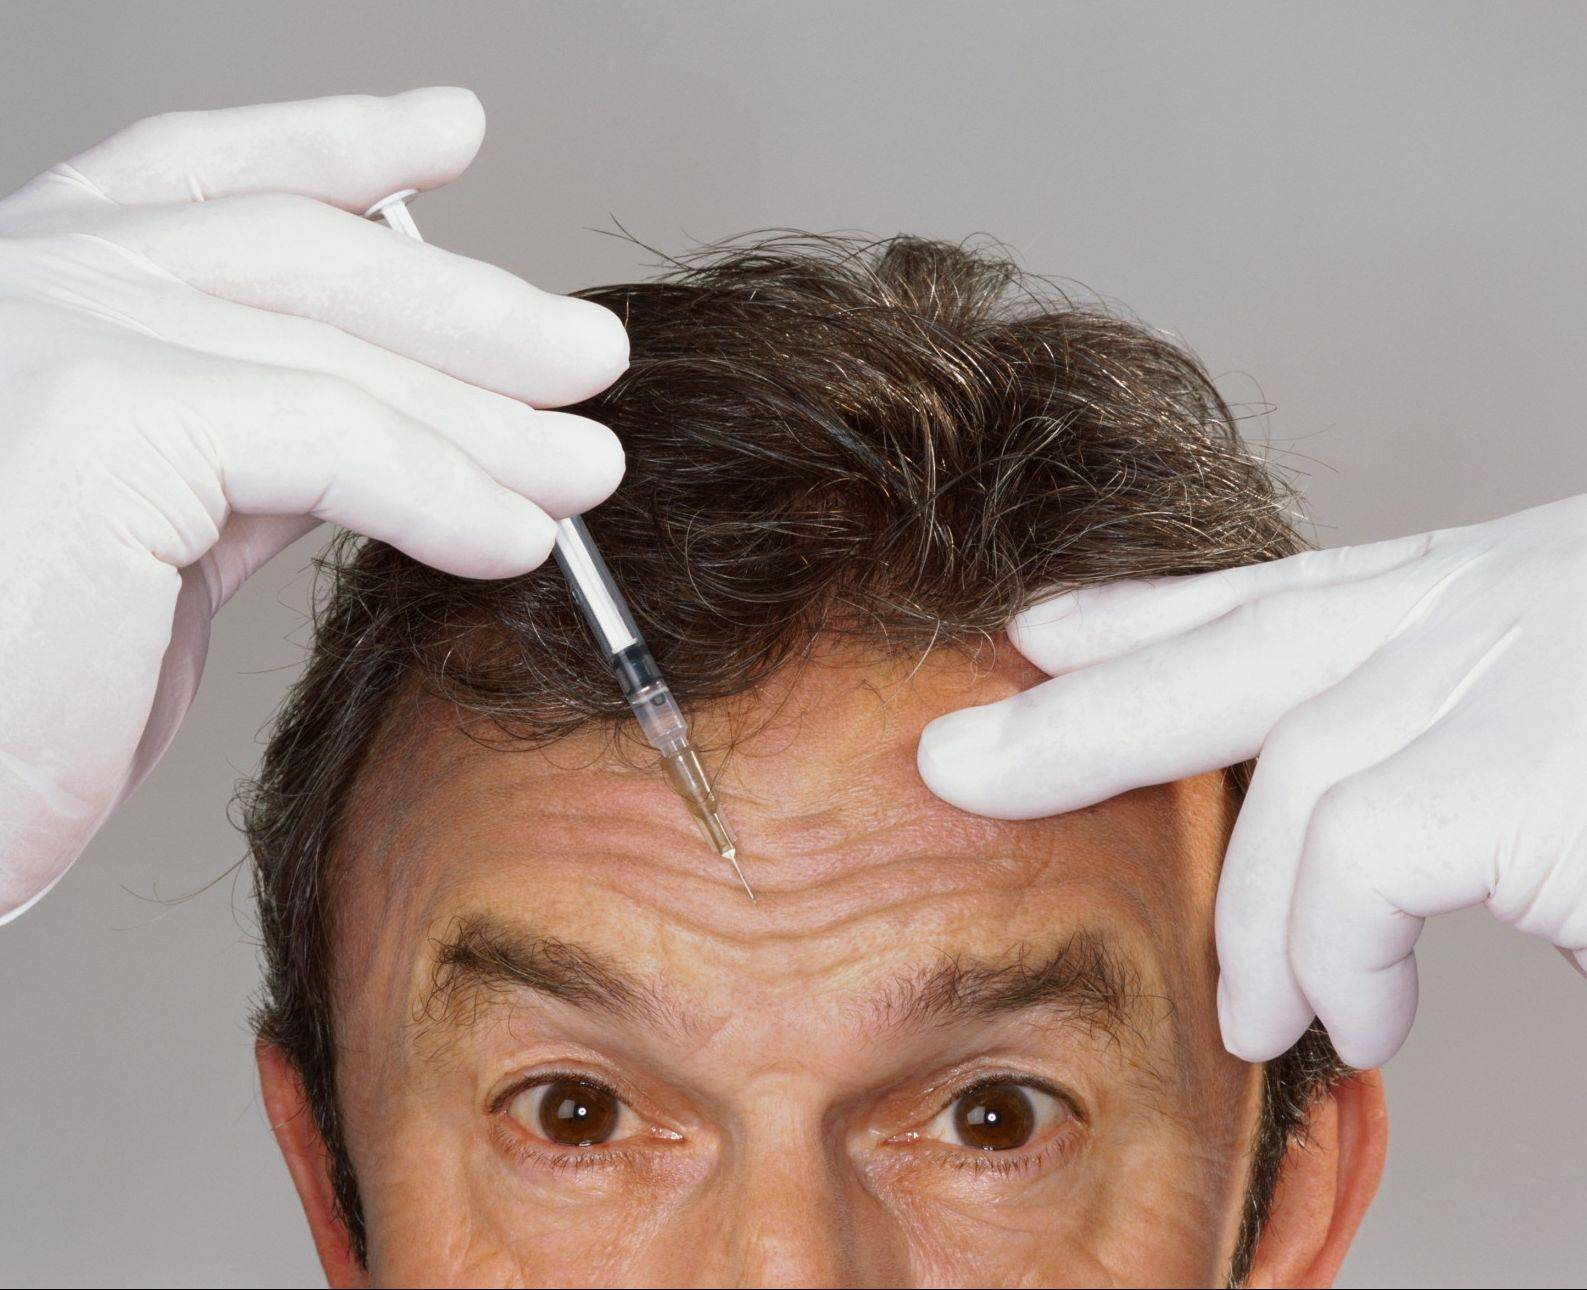 More men turning to Botox